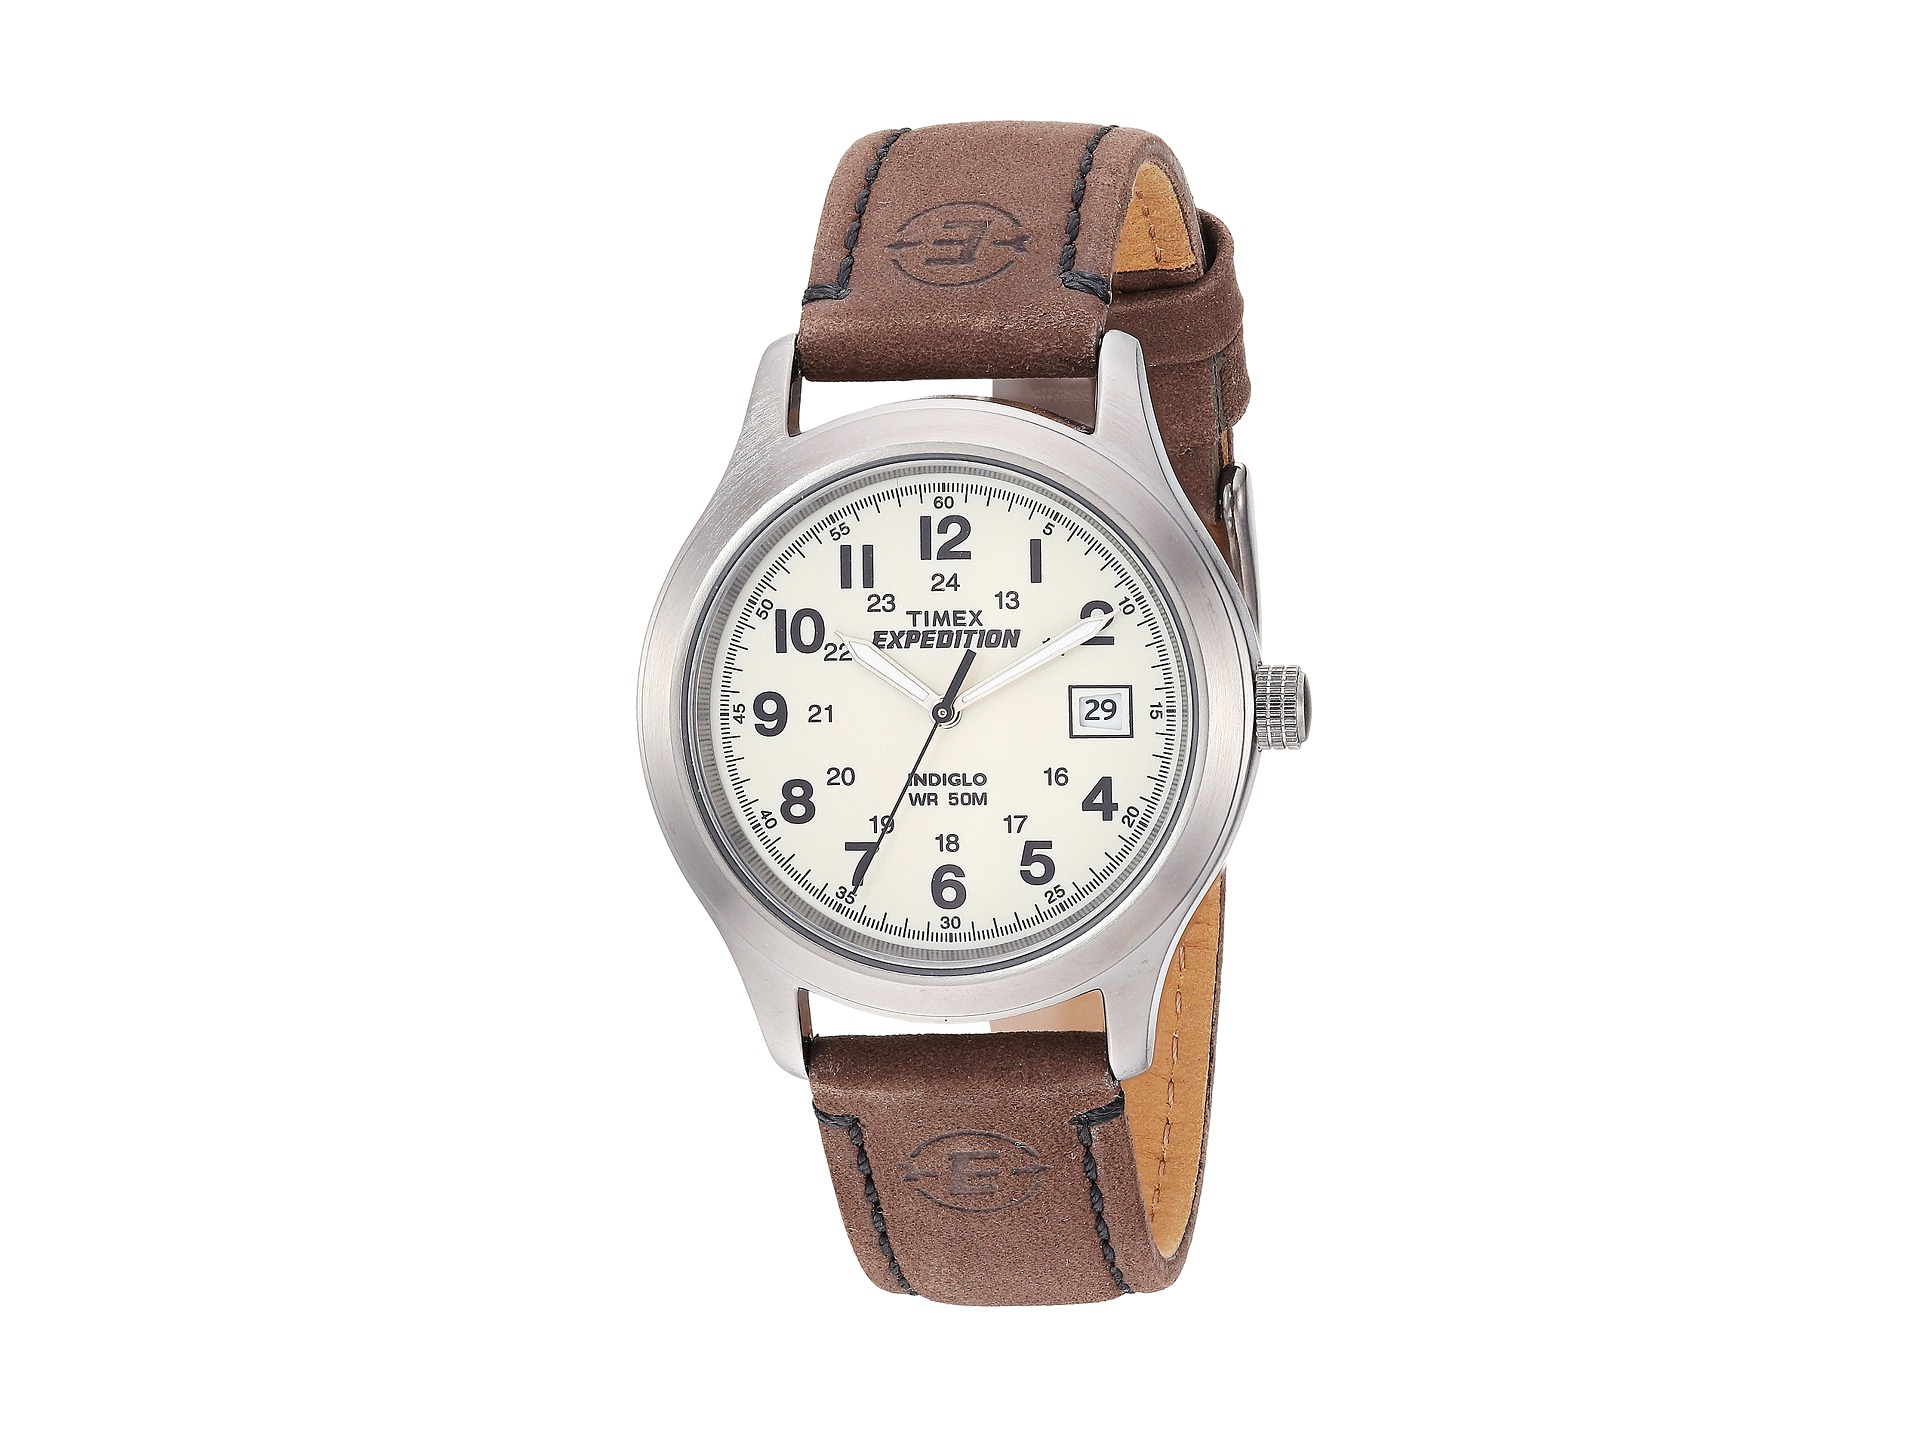 Timex expedition full size brown leather field watch free shipping both ways for Expedition watches